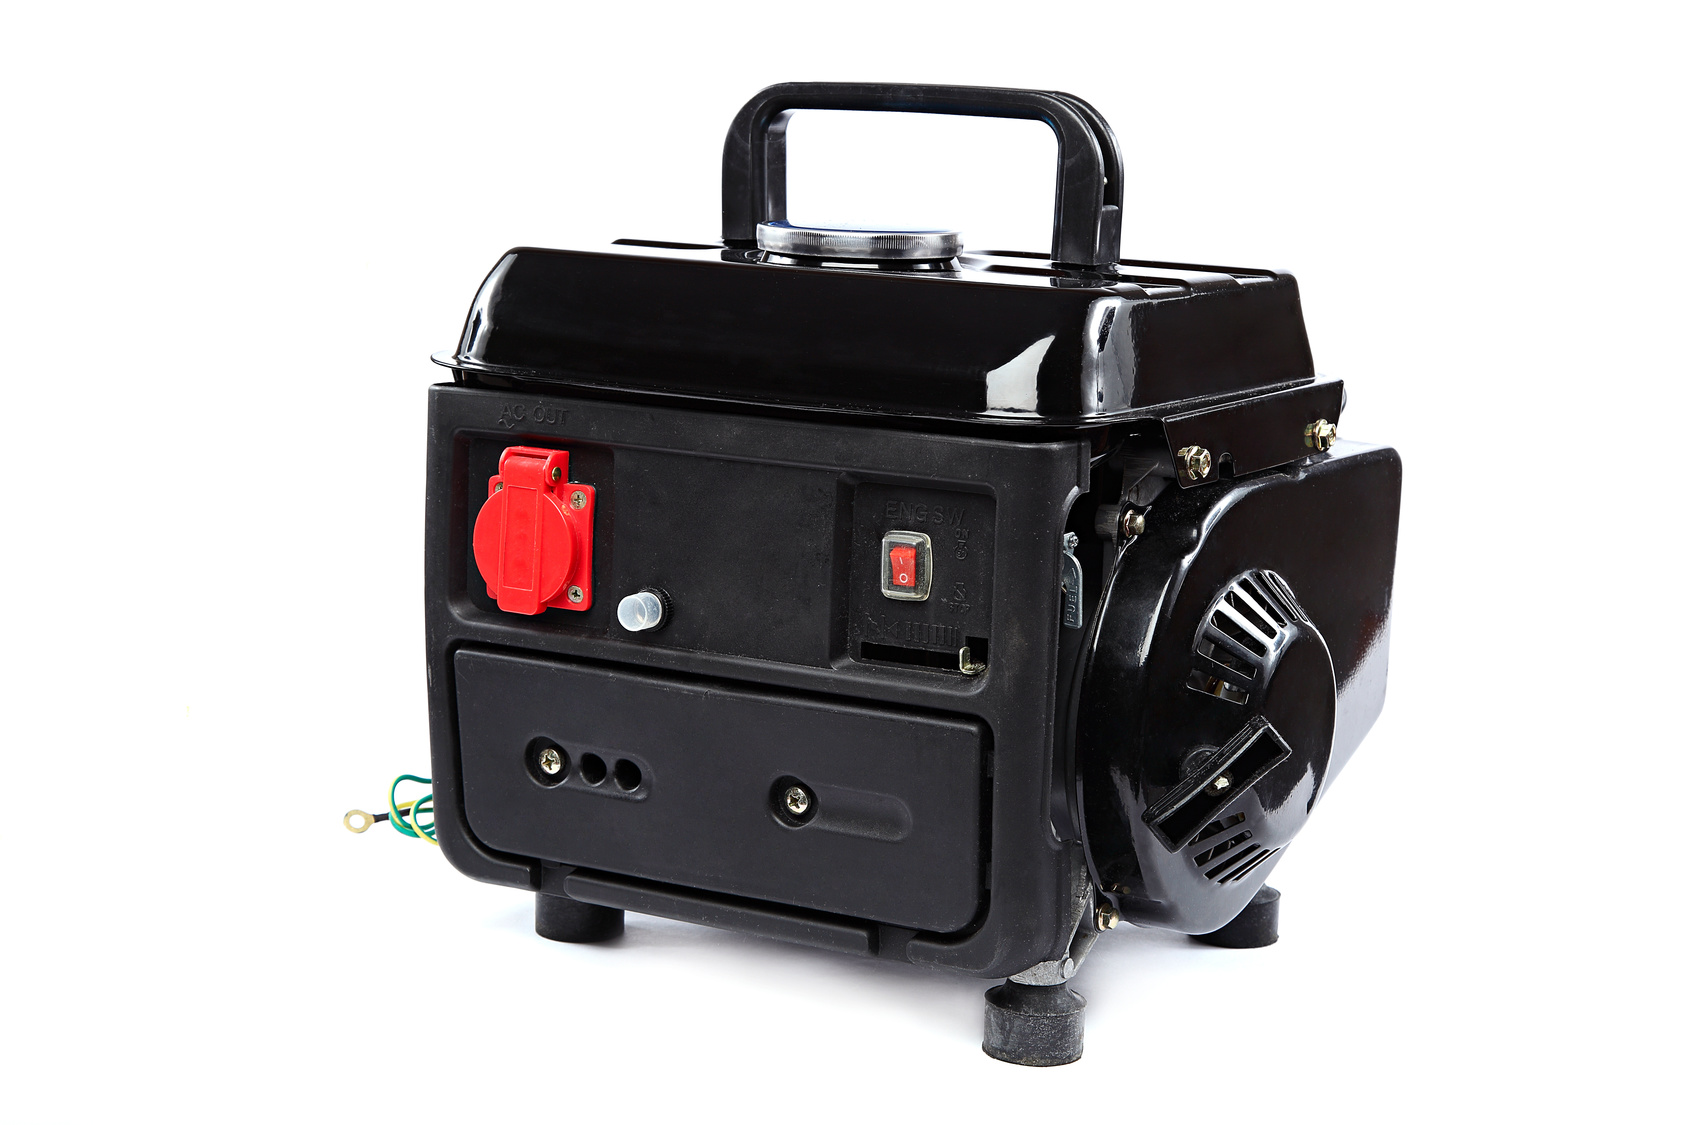 Portable fuel electric generator on white background.